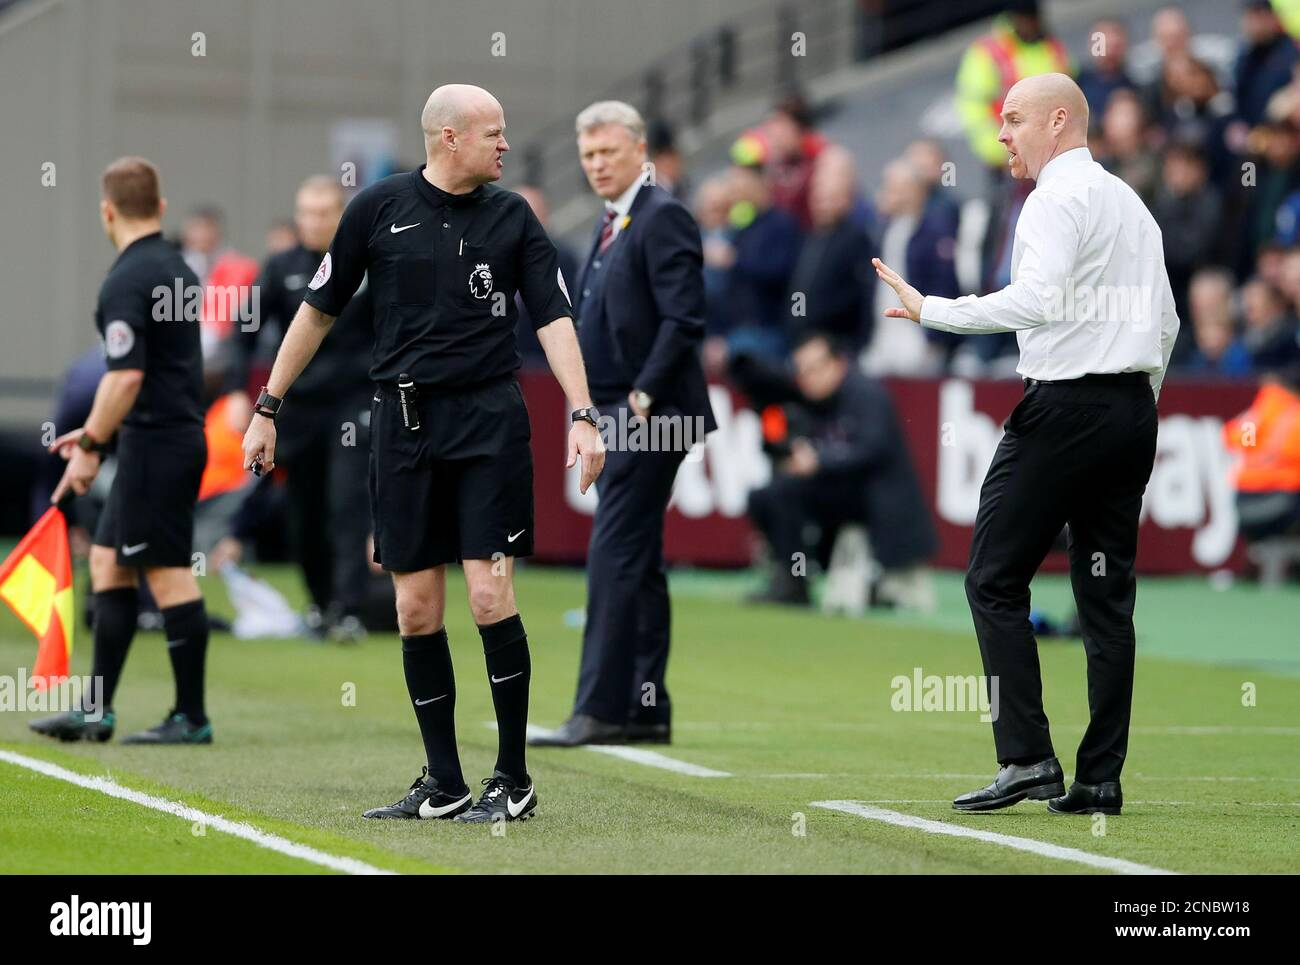 Soccer Football Premier League West Ham United Vs Burnley London Stadium London Britain March 10 2018 Burnley Manager Sean Dyche Remonstrates With Referee Lee Mason As West Ham